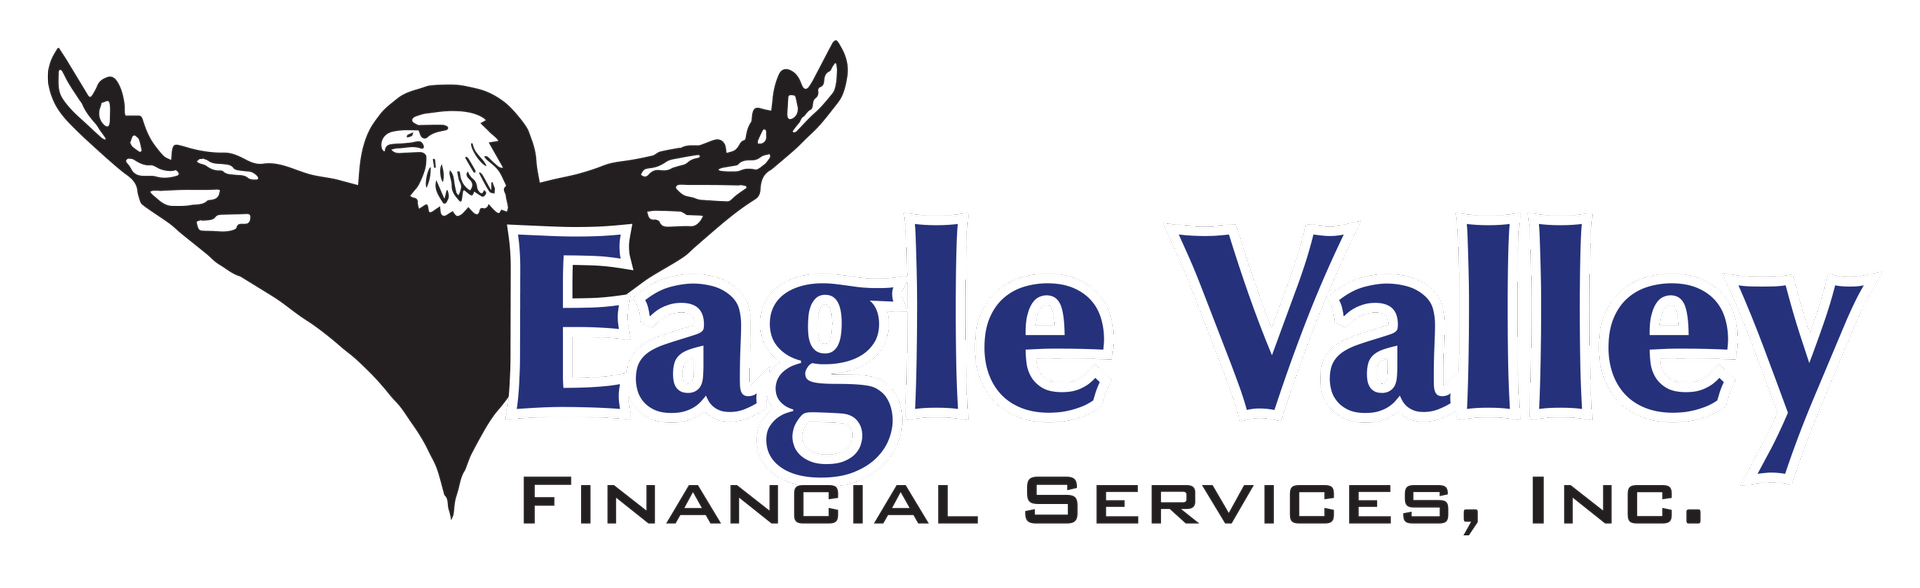 Eagle Valley Financial Services